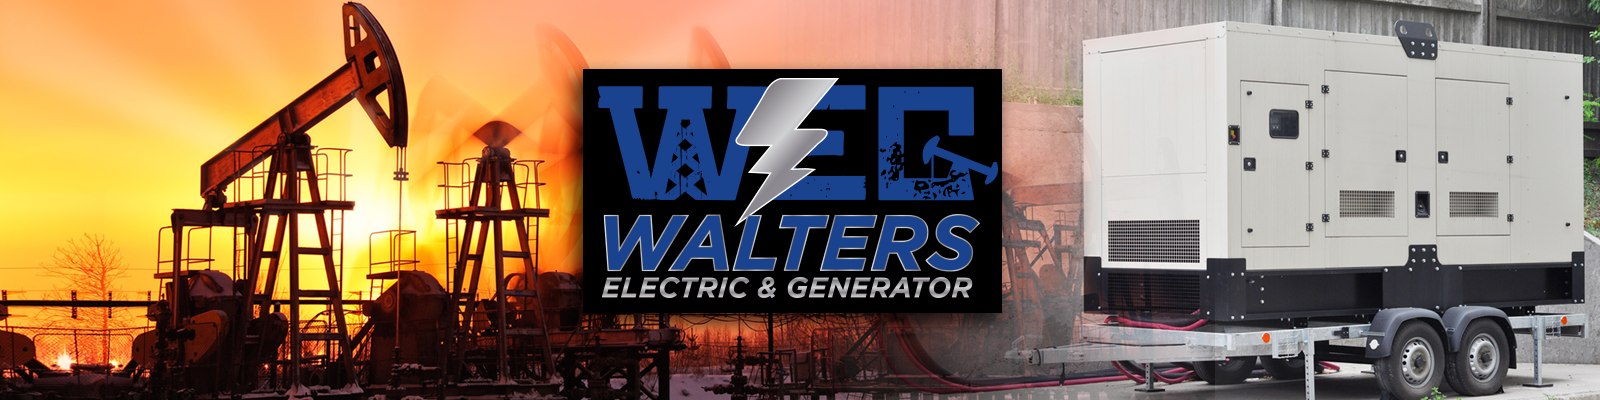 Walters Electric And Generator image 0